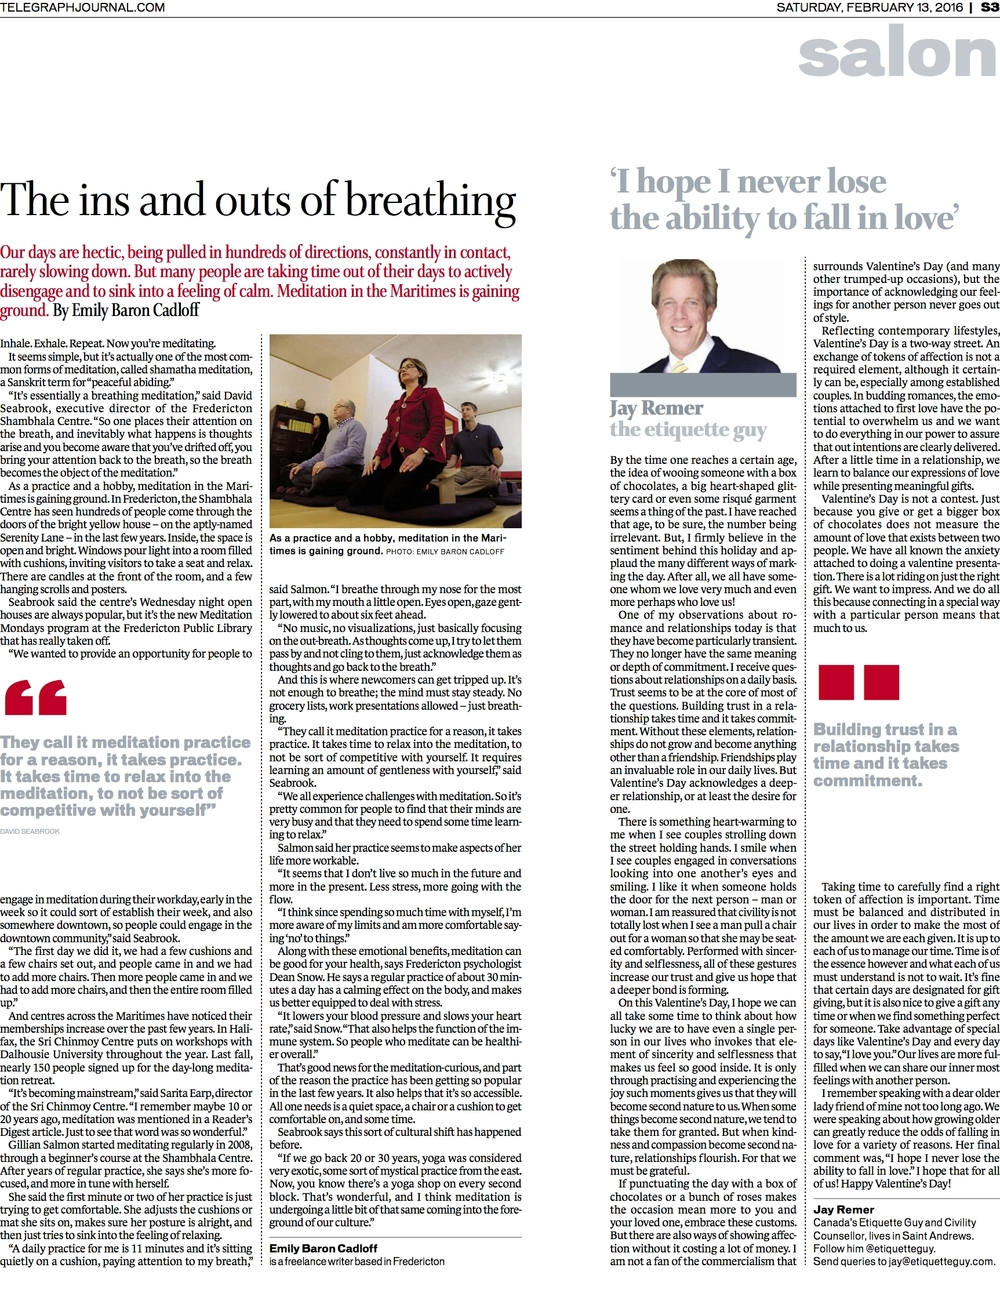 Feature on meditation. New Brunswick Telegraph-Journal, Feb 2016